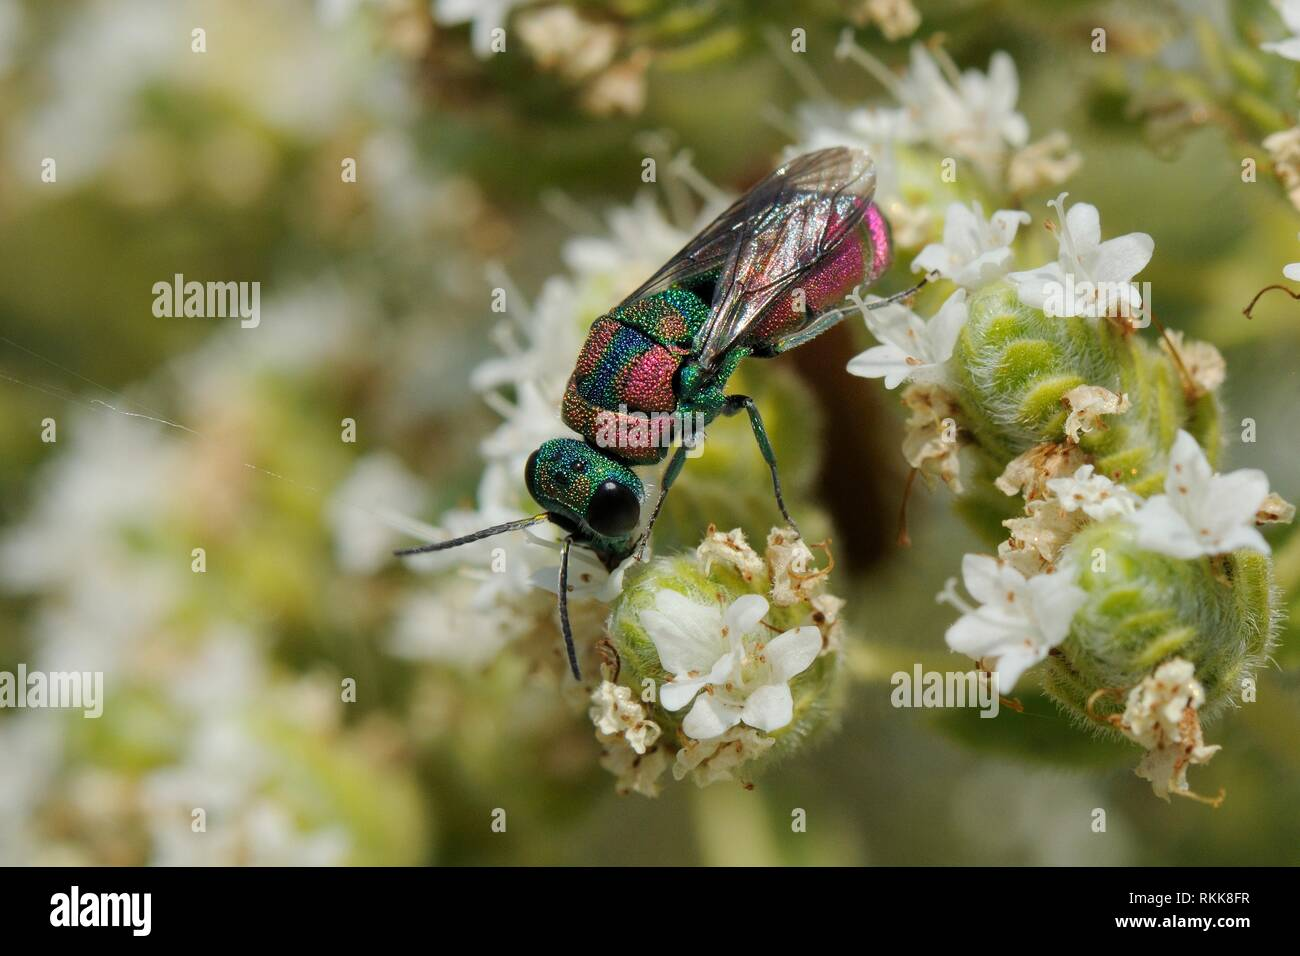 Ruby-tailed wasp / Cuckoo wasp / Jewel wasp (Pseudospinolia marqueti) feeding on Cretan oregano (Origanum onites) flowers, Lesbos / Lesvos, Greece - Stock Image